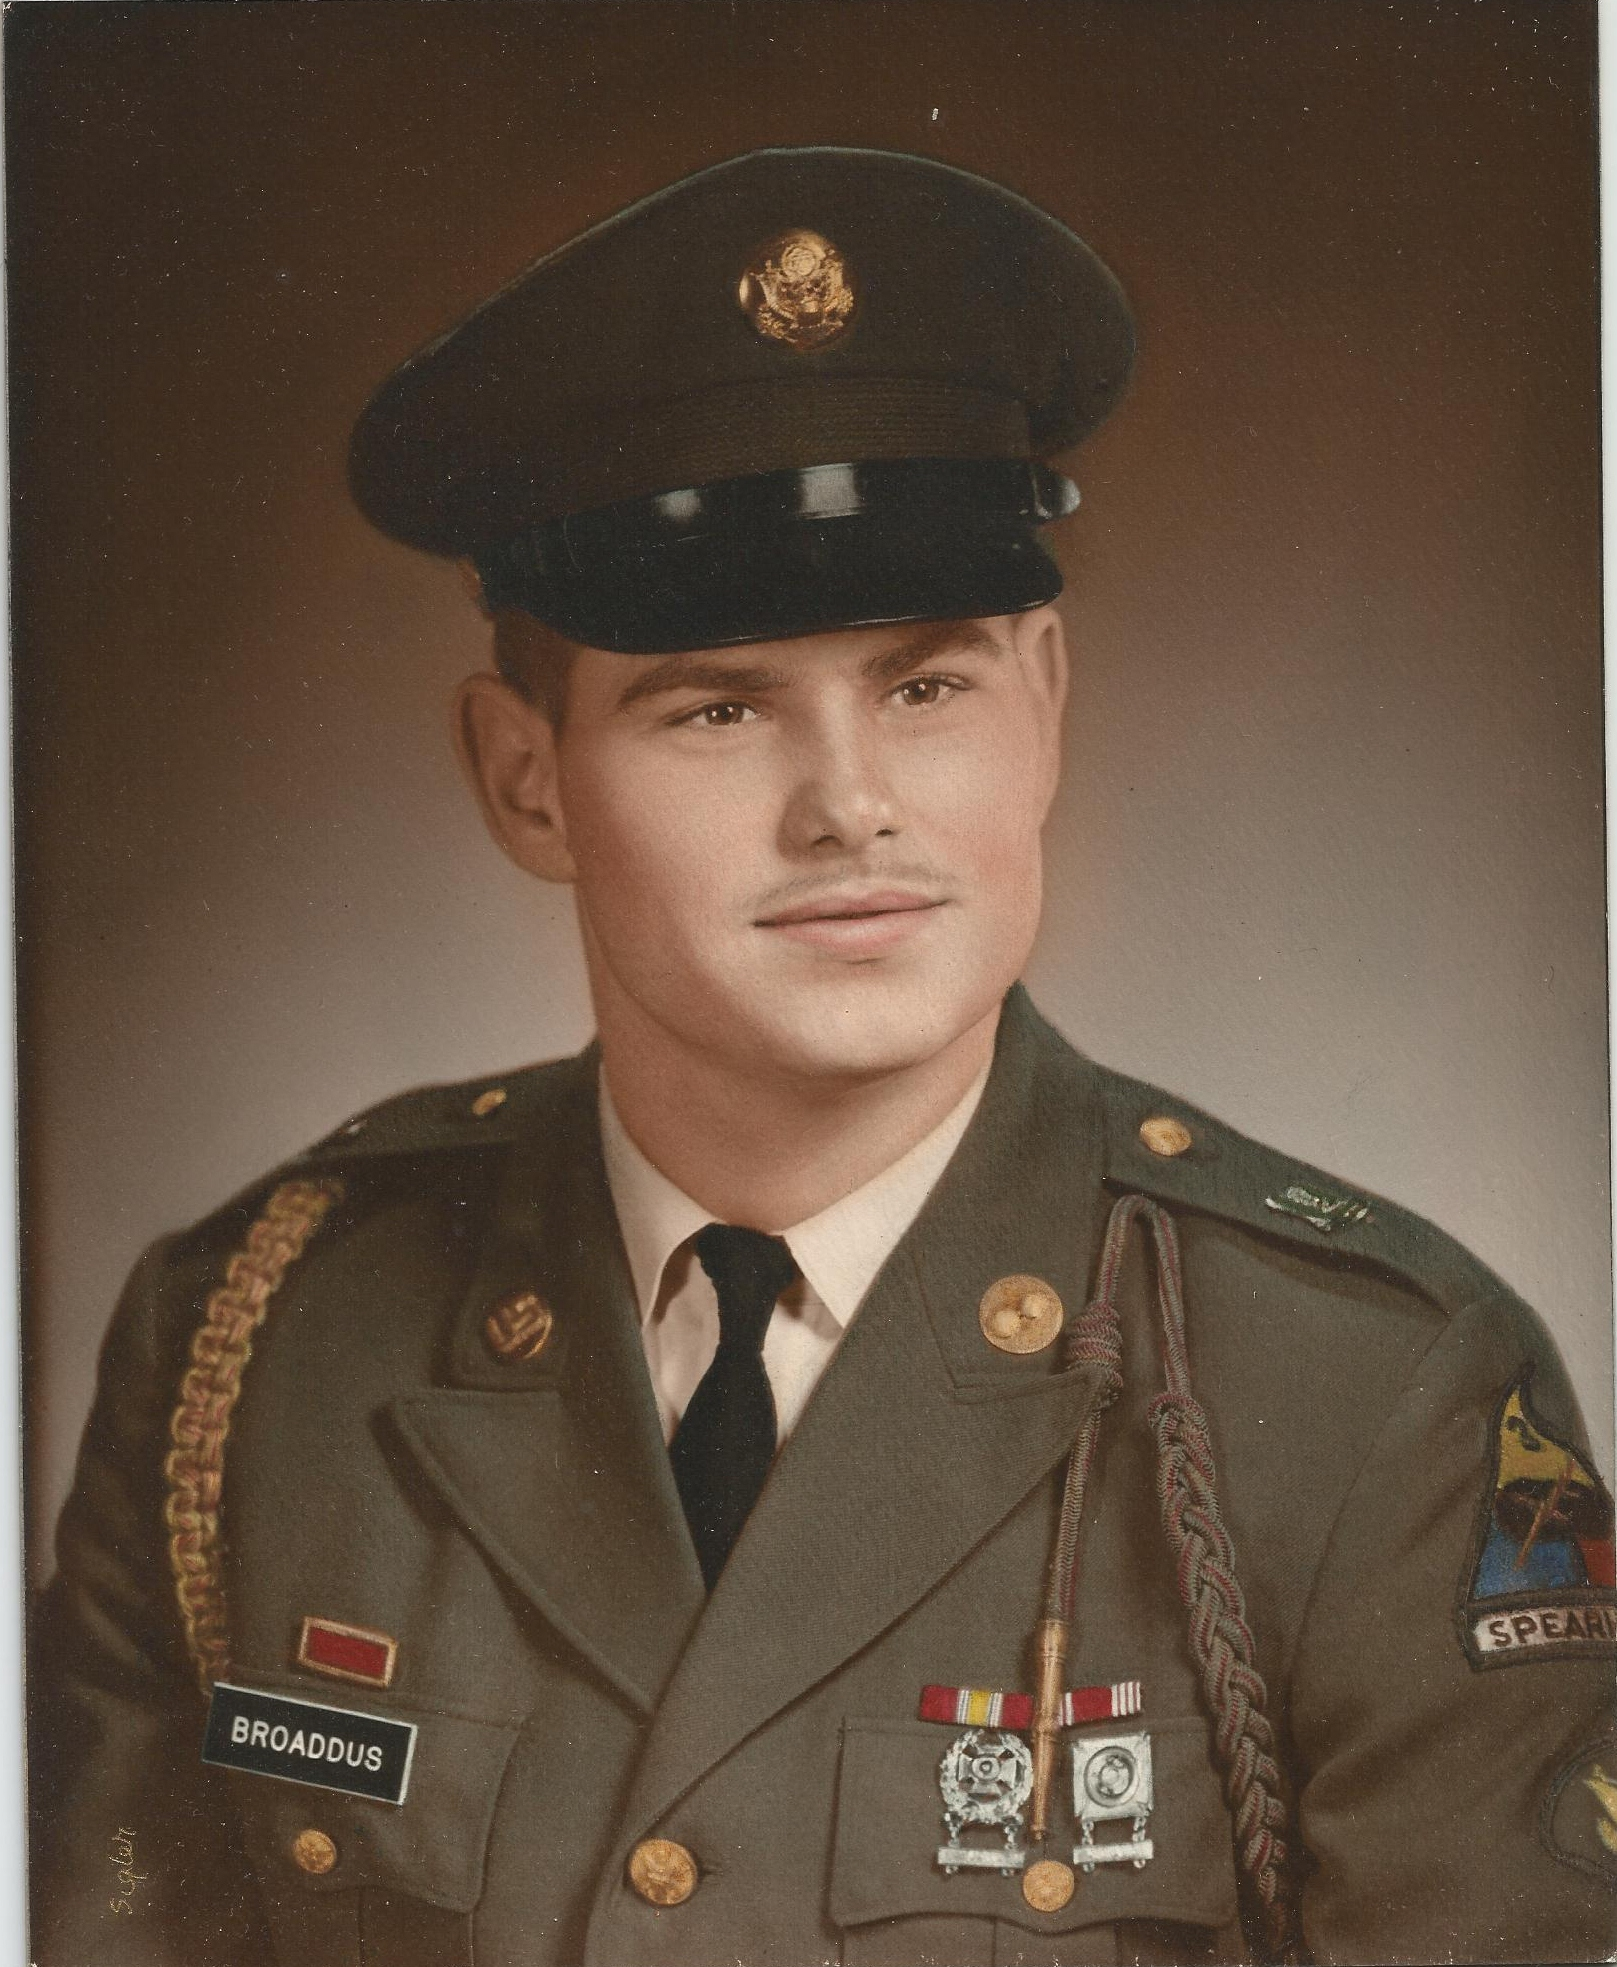 Sgt. Ronald Broaddus